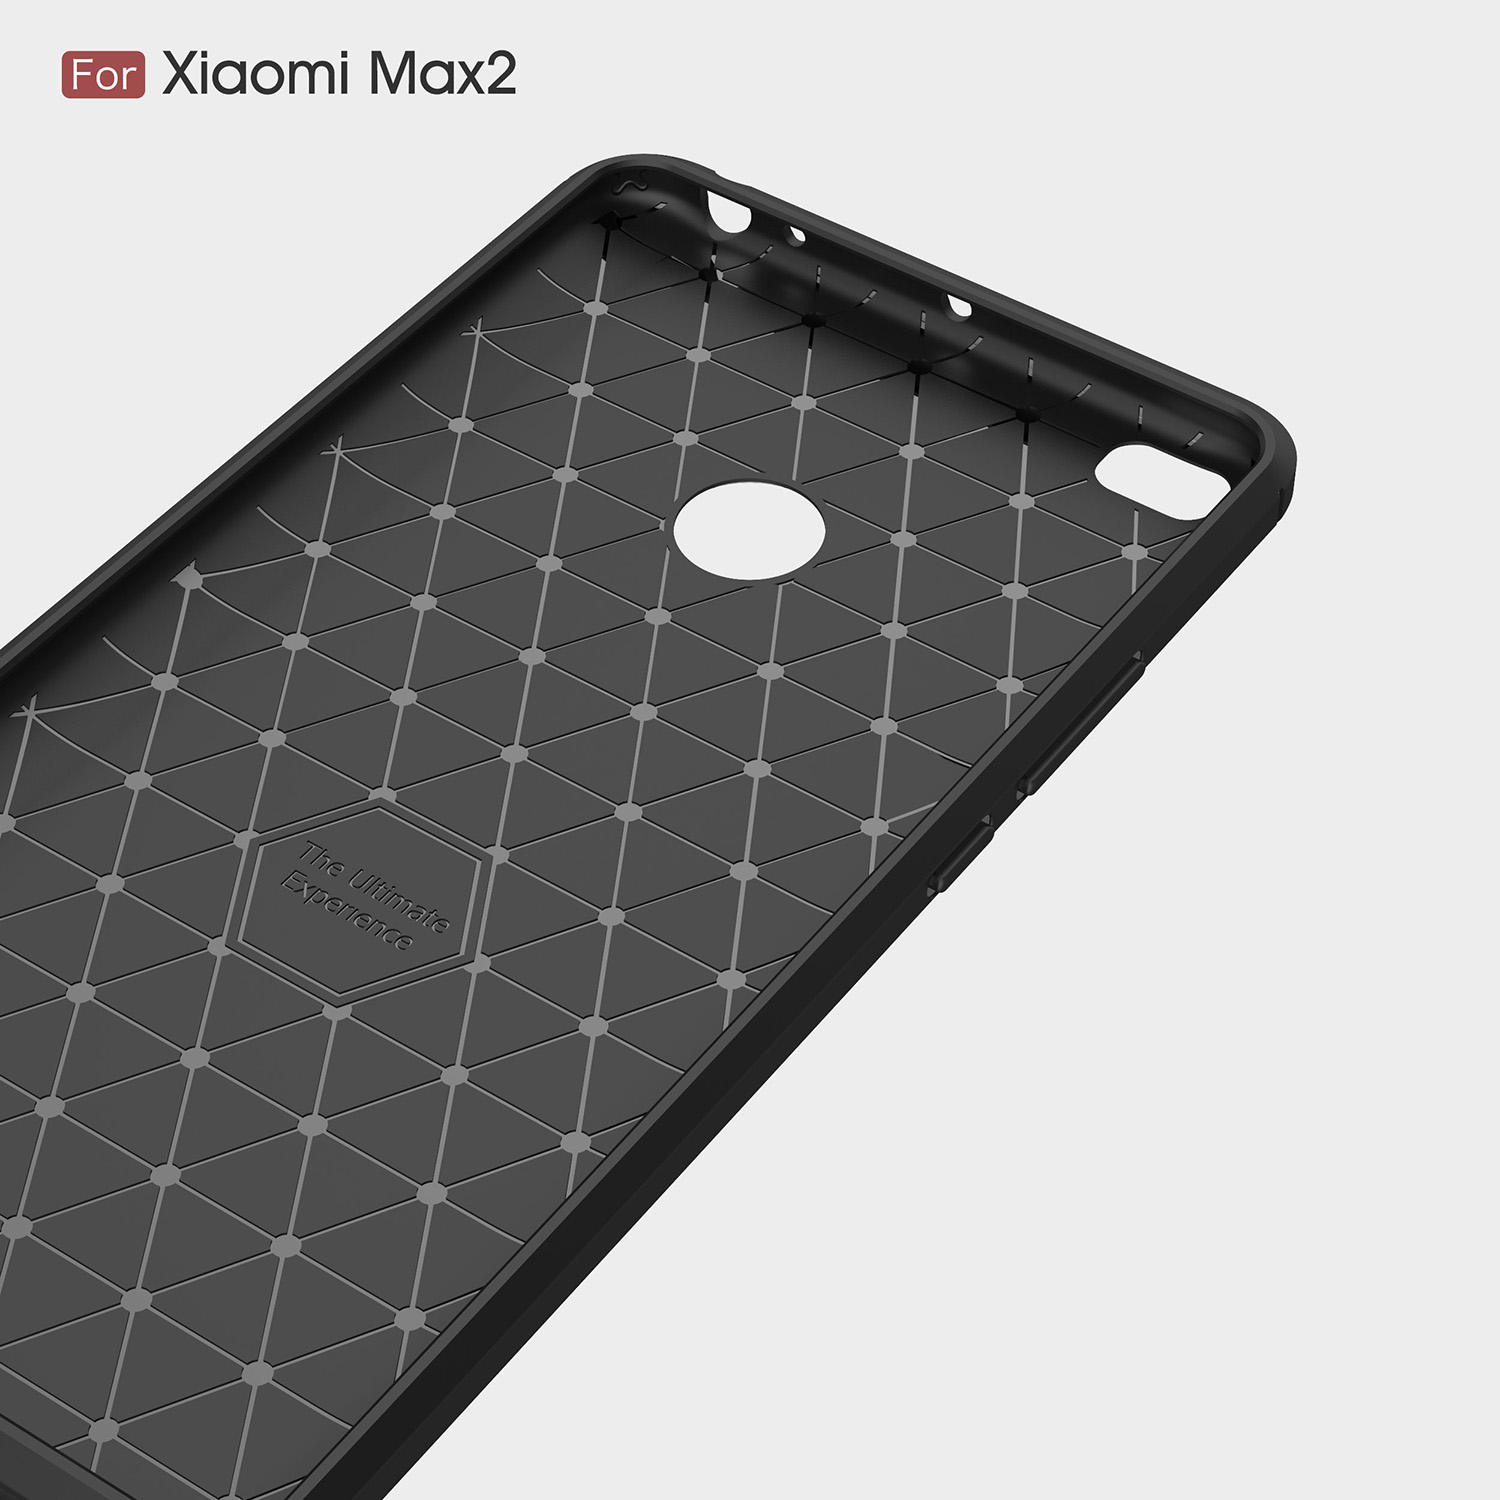 For Xiaomi Redmi 4A 4x Note 4 Glabal Mi5X Mi A1 Mi6 Mi5 Max2 Soft TPU Carbon Fiber Brushed Case For Mi Max Full Protection Coque in Fitted Cases from